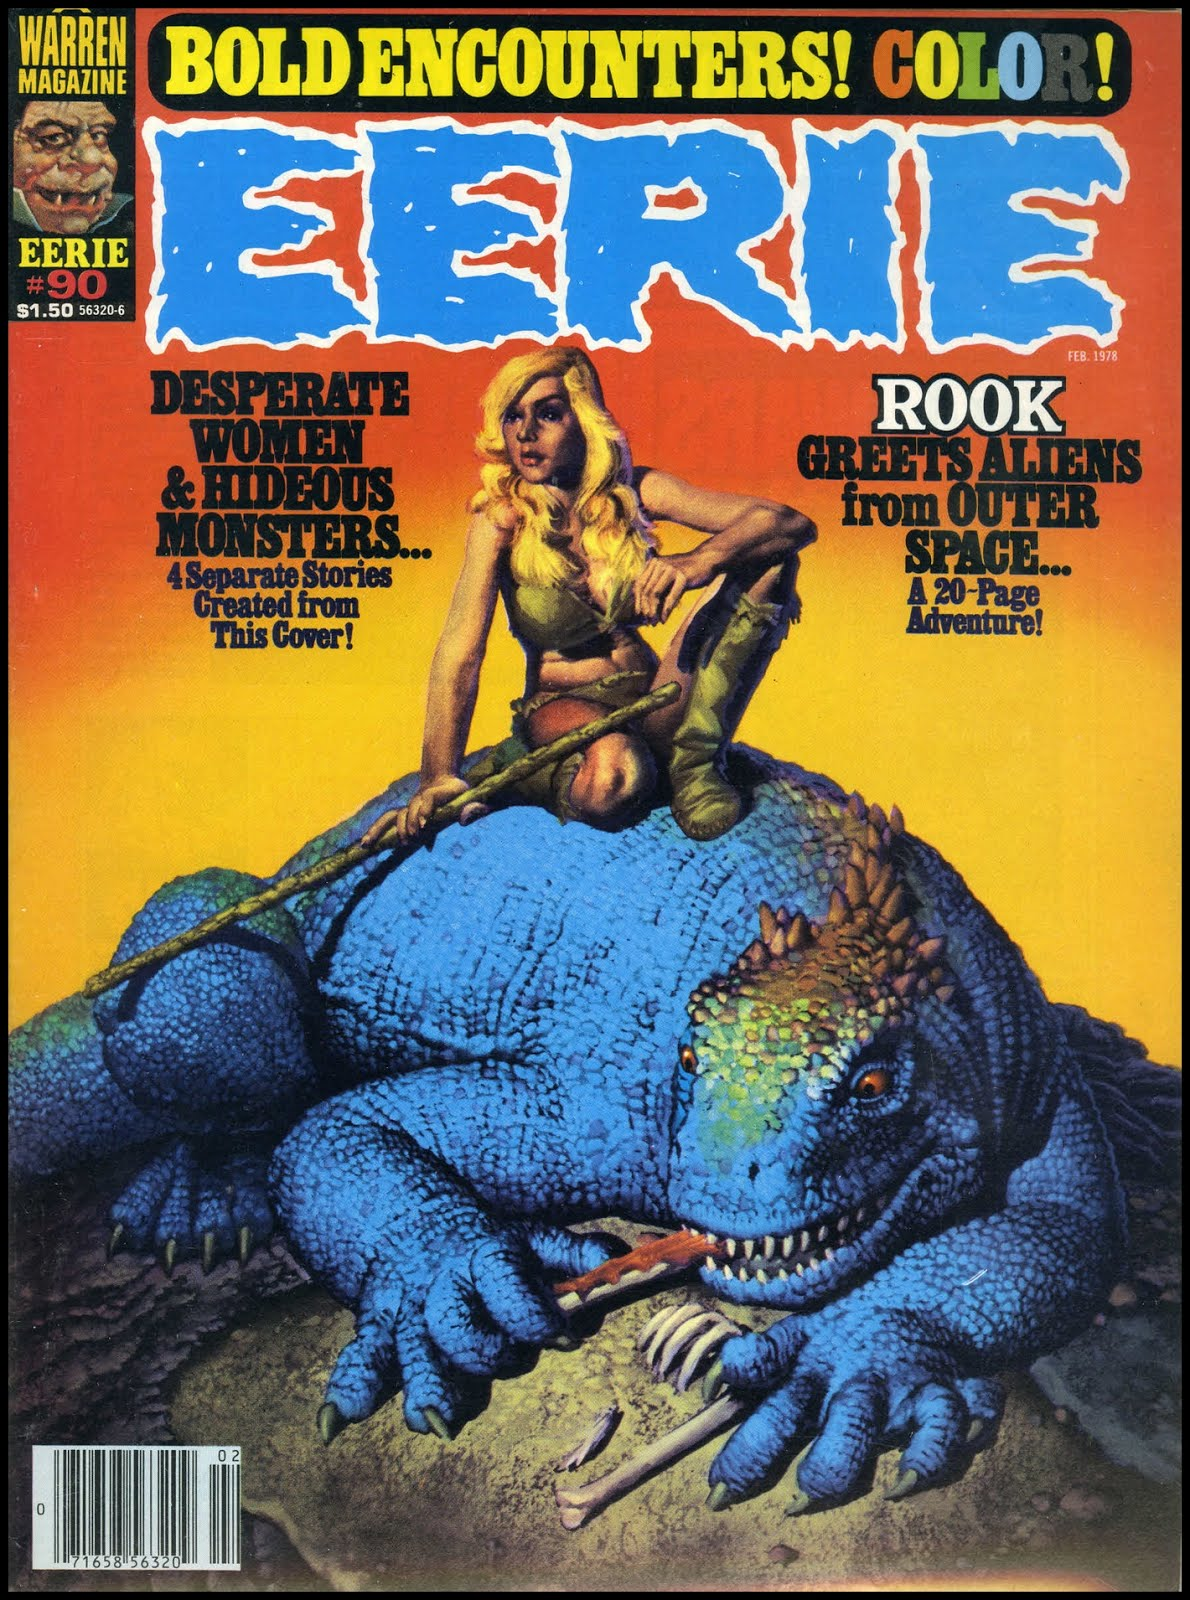 Fantasy Ink: Corben Eerie Covers